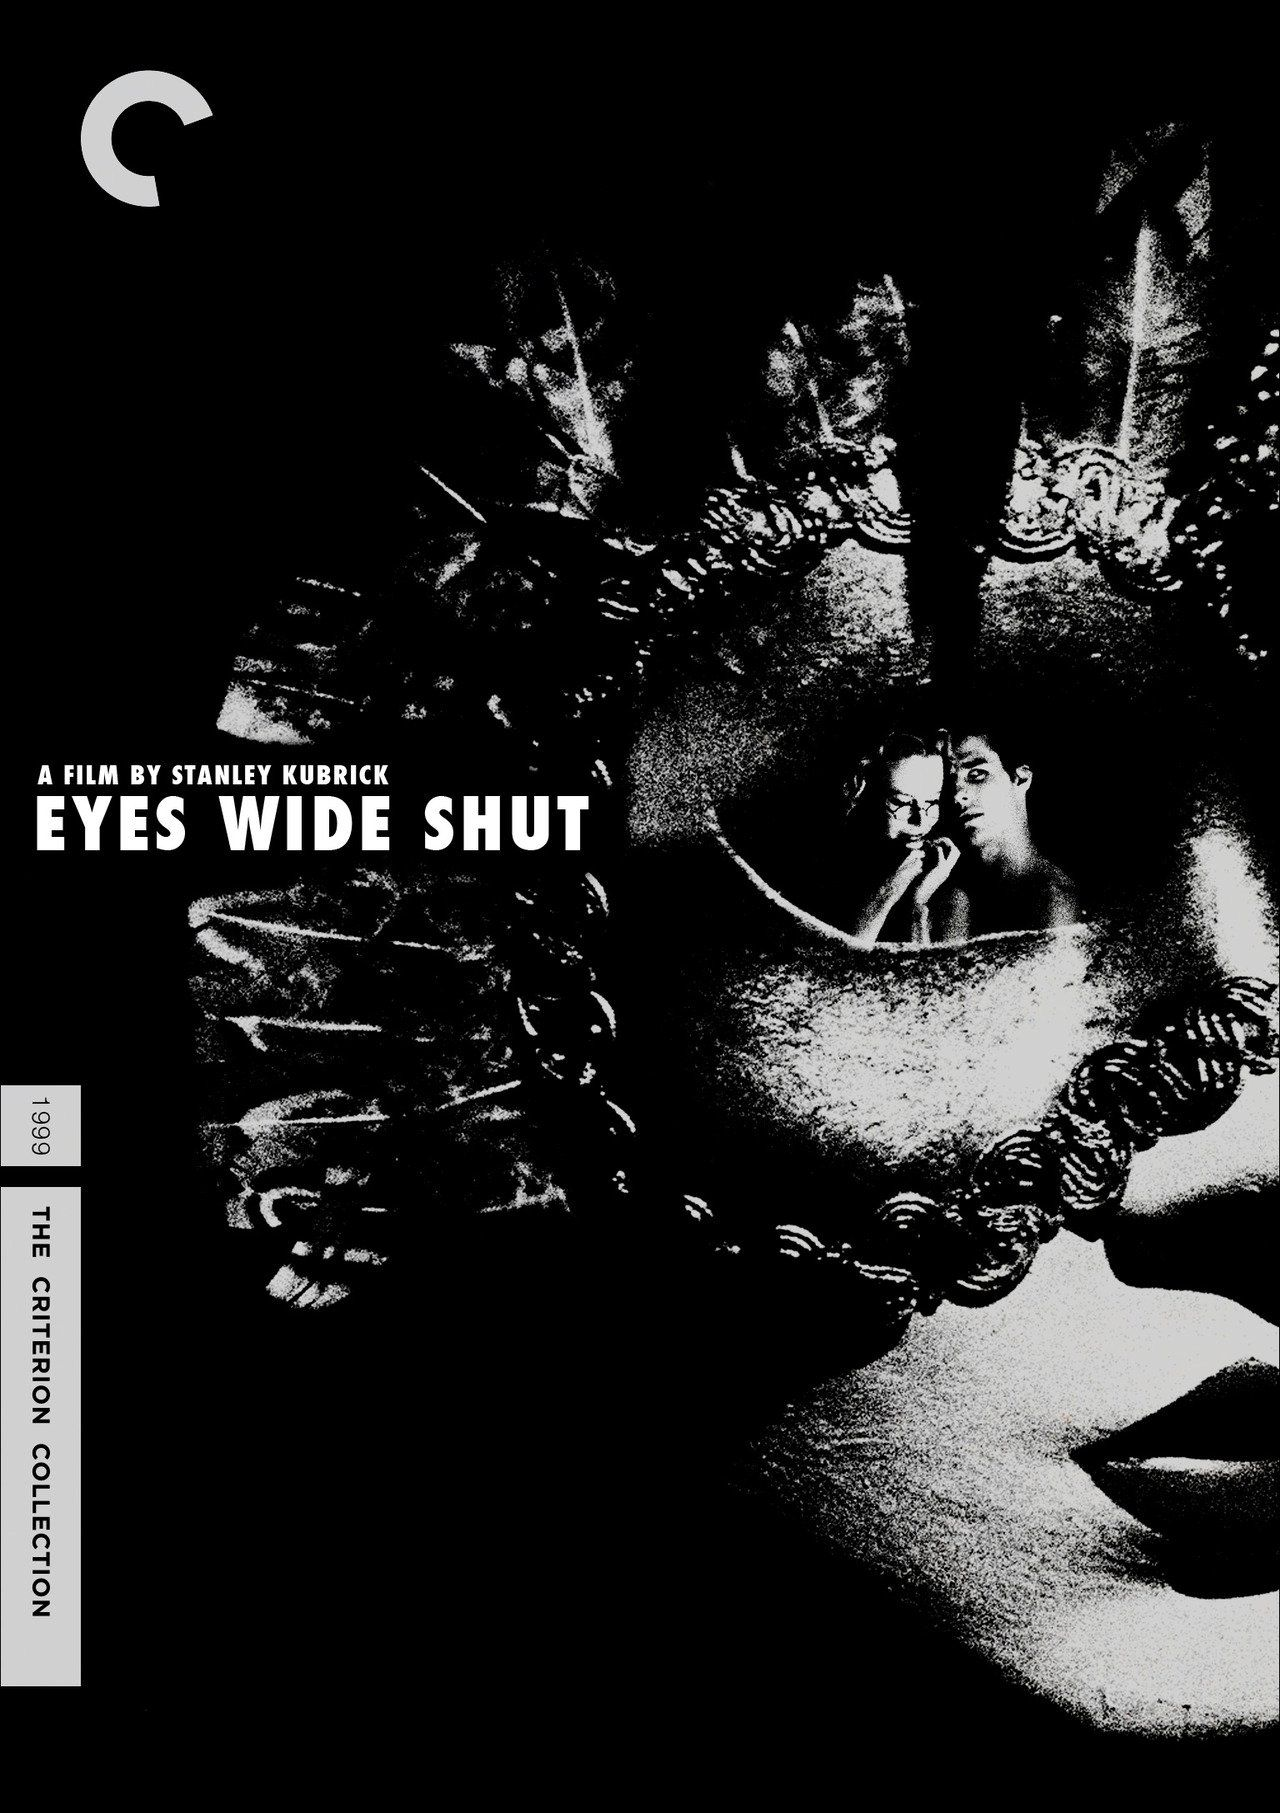 Eyes Wide Shut 10 Awesome Images You Ve Never Seen Eyes Wide Shut Movie Posters Cinema Posters